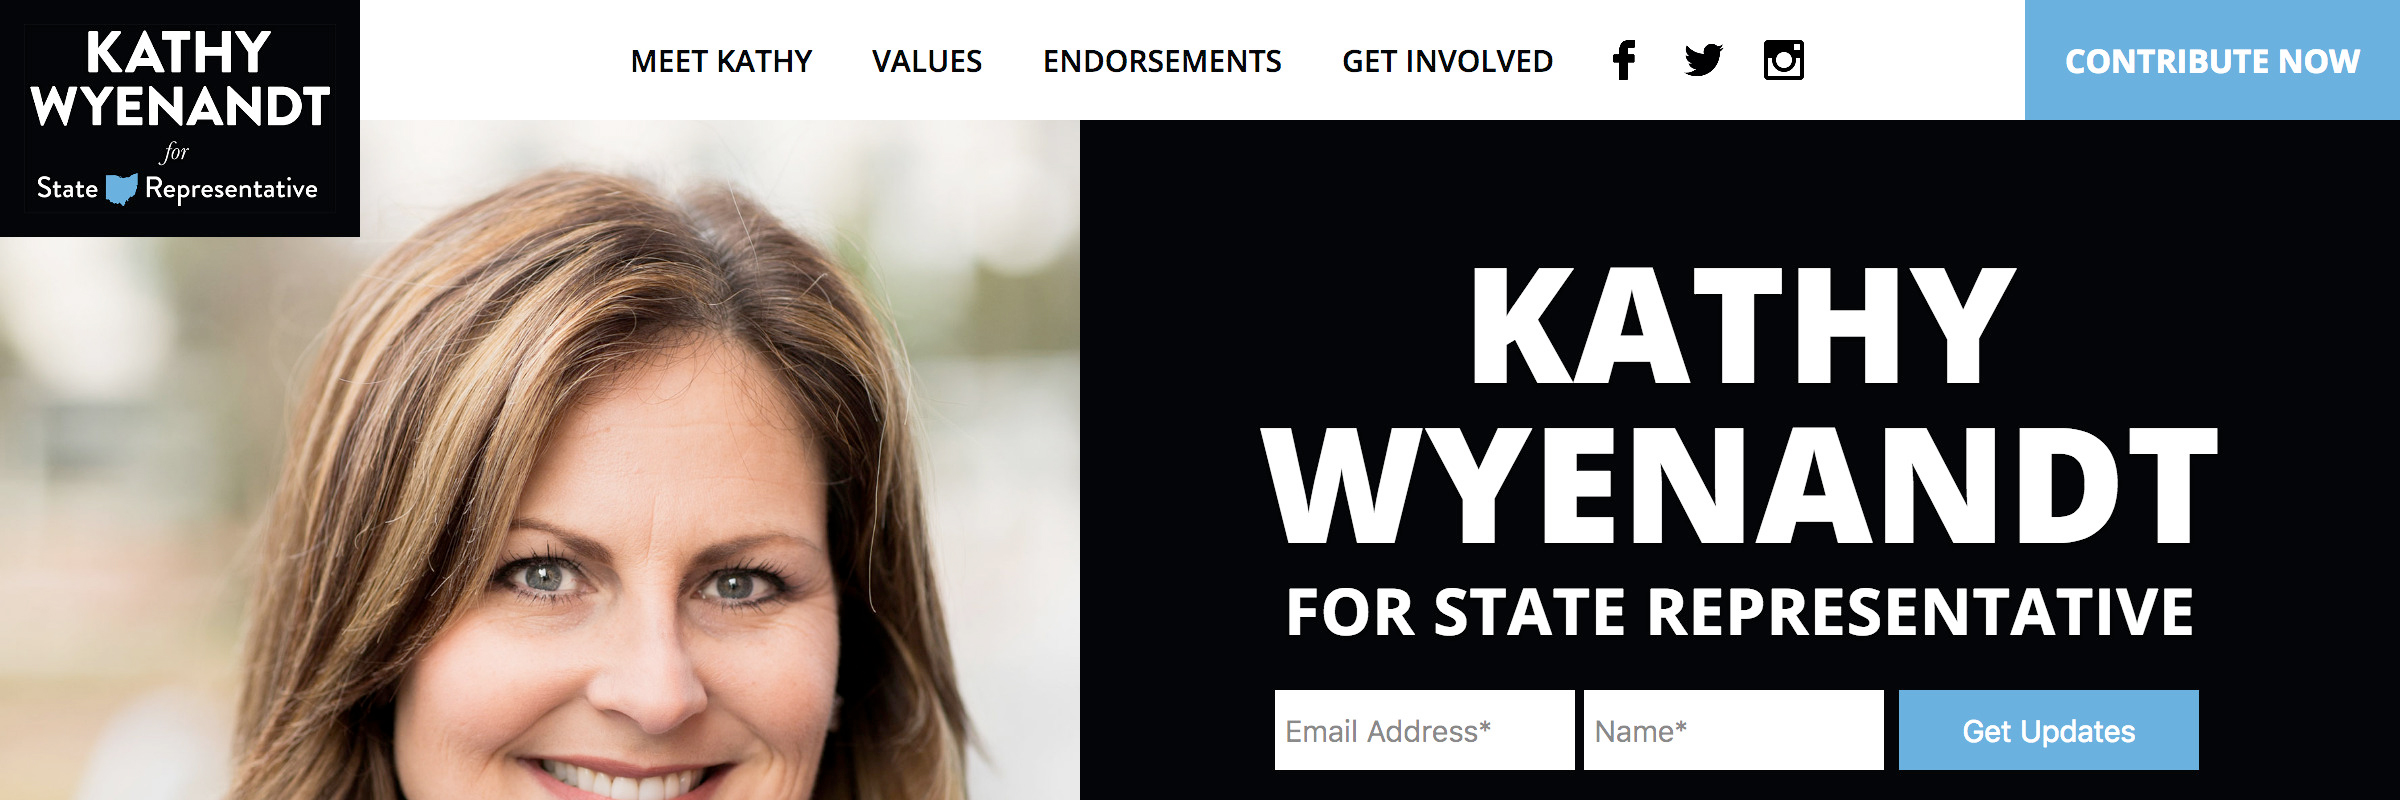 Kathy Wyenandt For State Representative